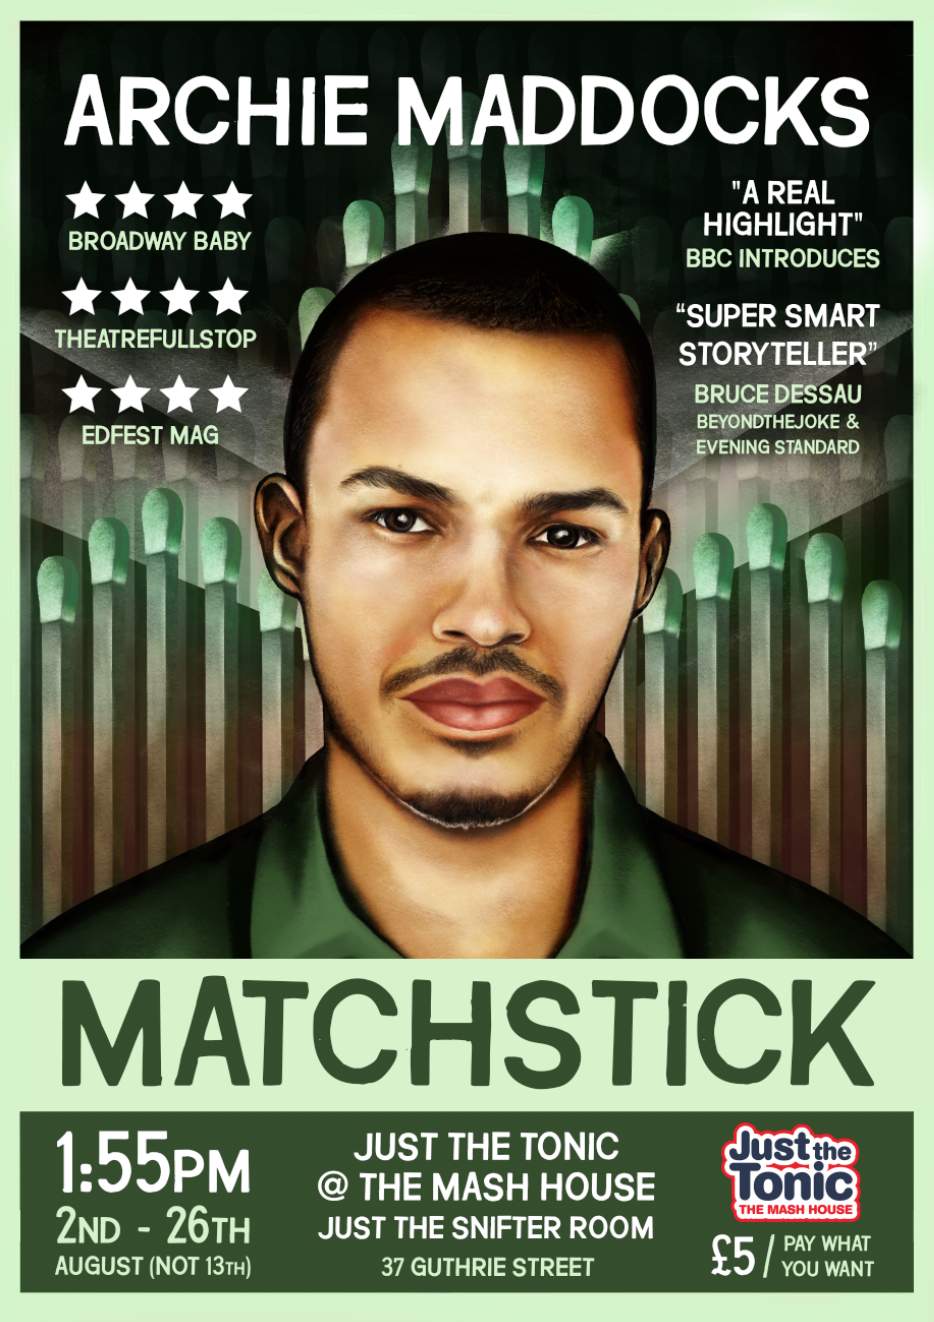 Archie Maddocks: Matchstick 2018 poster